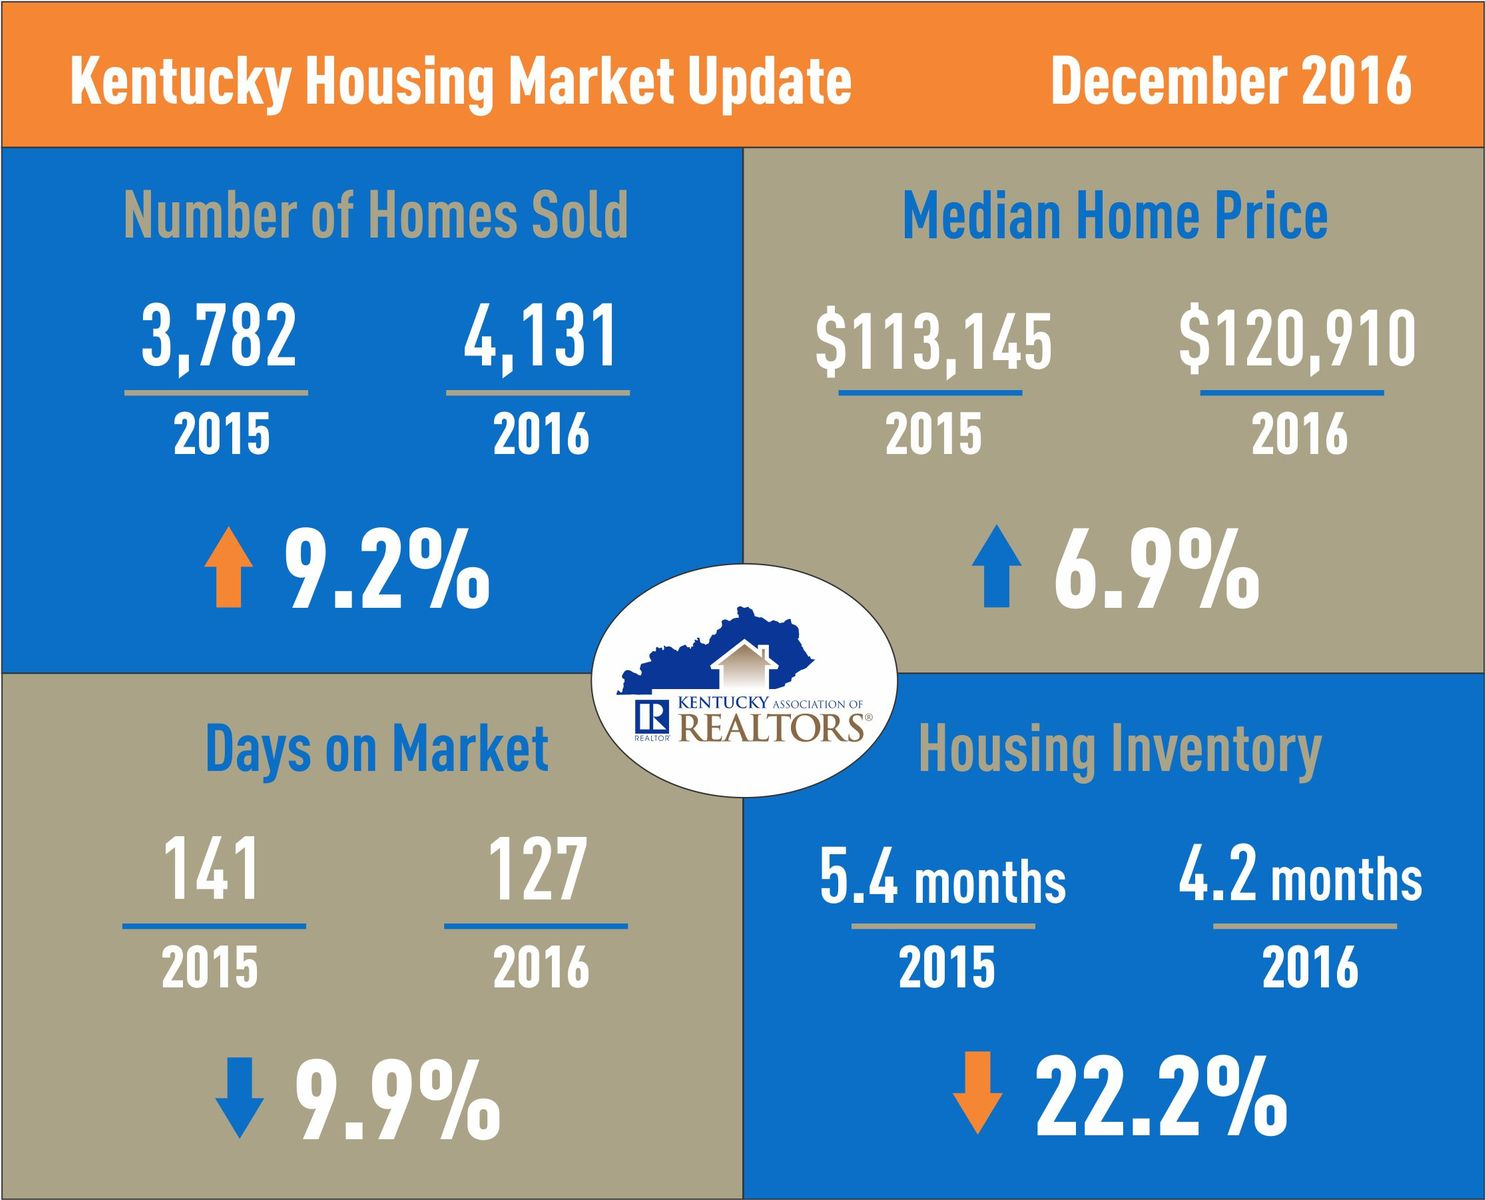 Kentucky Housing Market Update December 2016